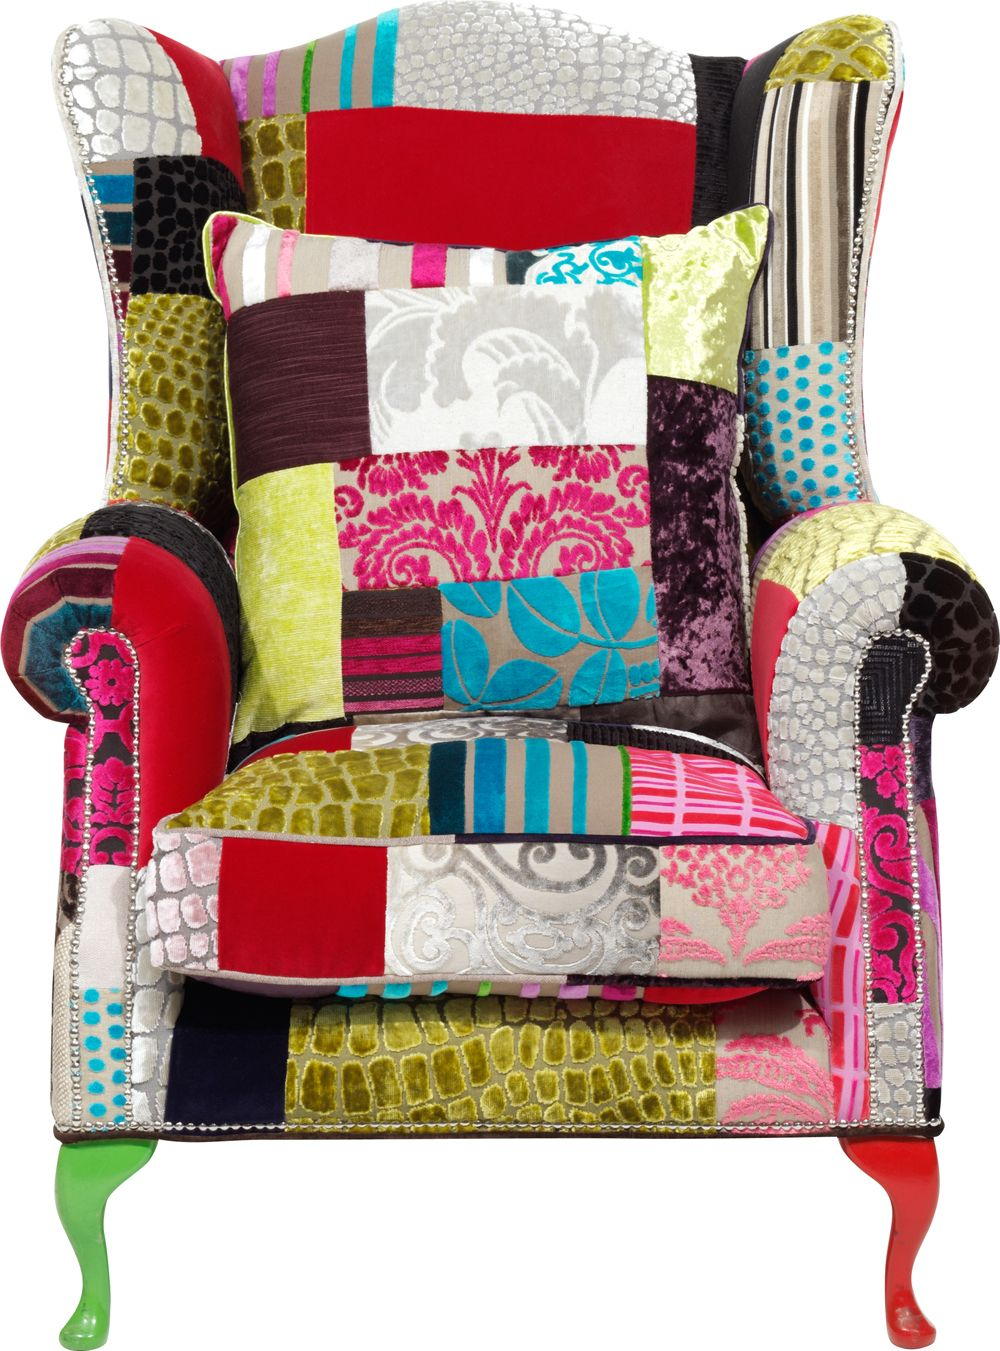 The fabulous Grandwing Patchwork Armchair from Sofa Design ...